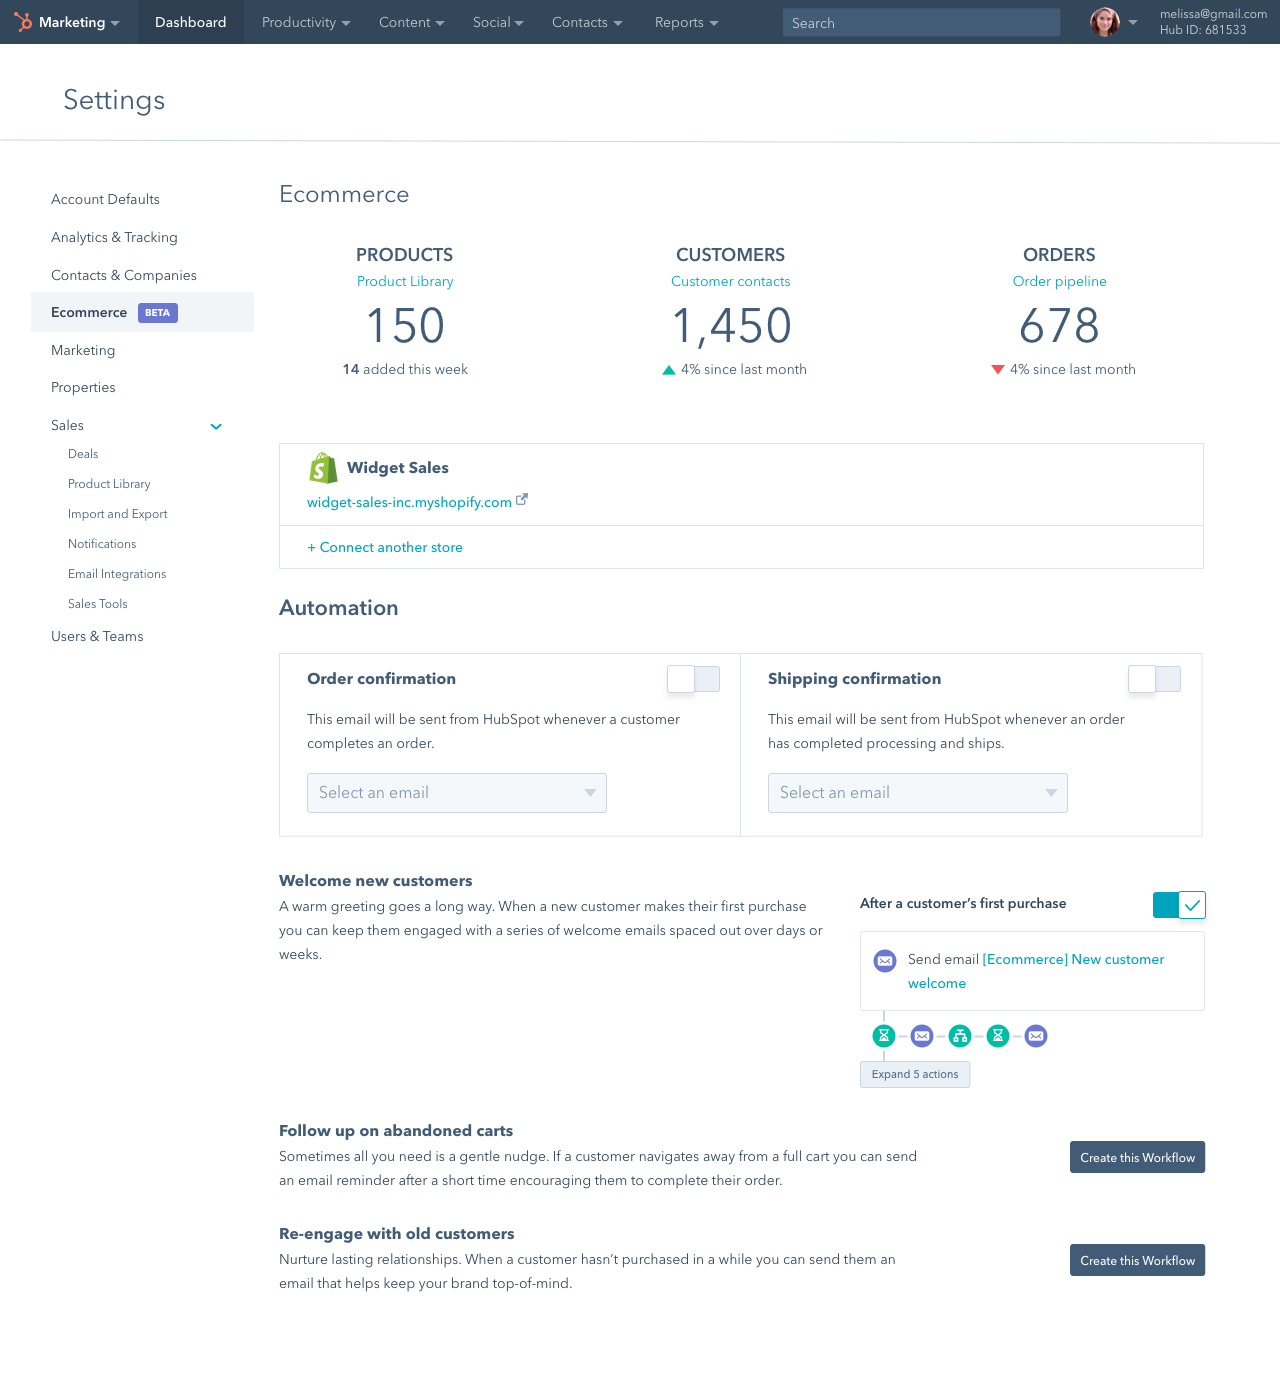 [In Beta] Shopify for HubSpot and Ecomm Bridge